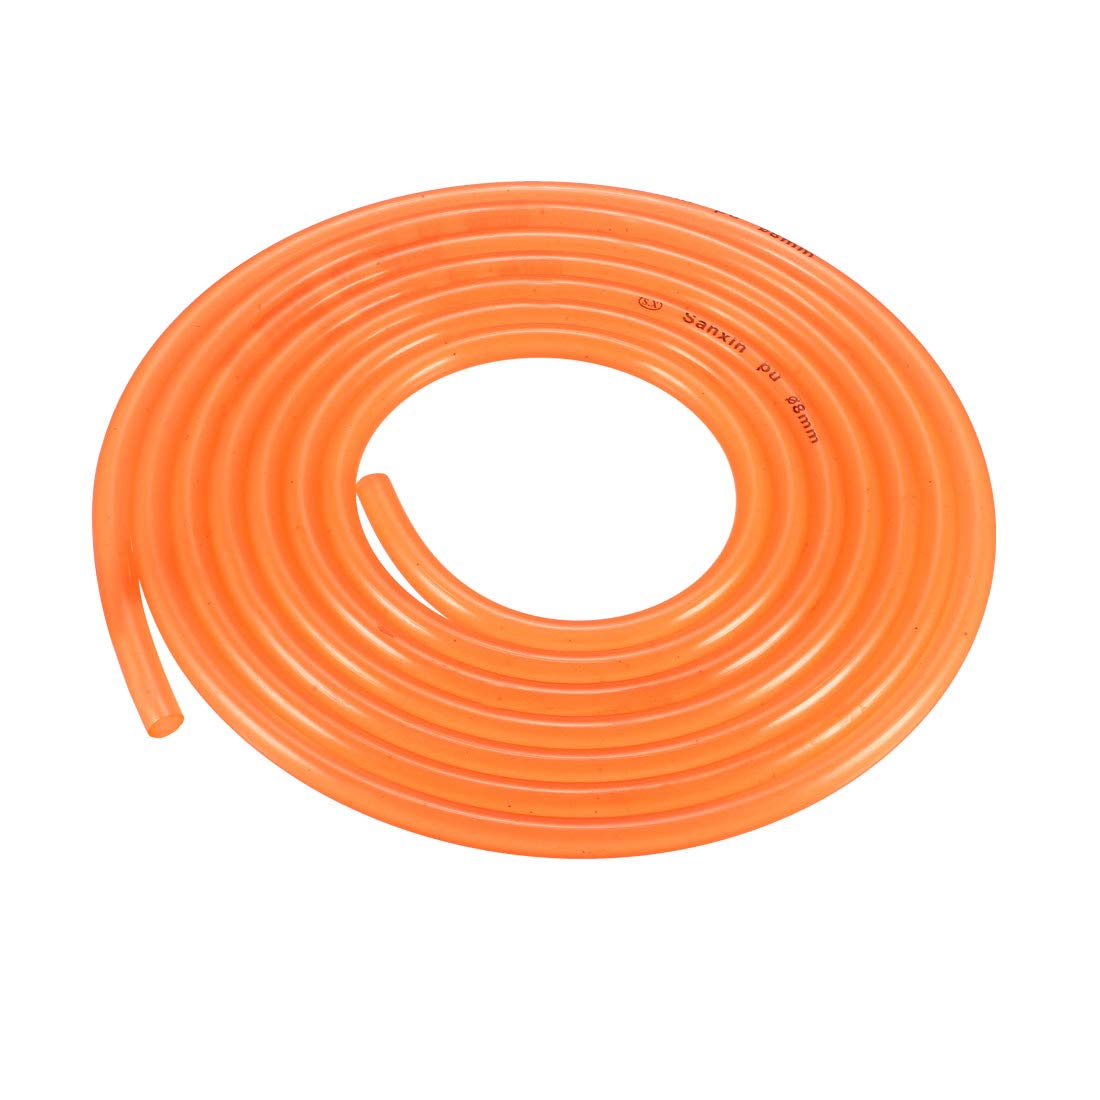 uxcell 10ft OFFicial store 8mm PU Transmission Belt Round Max 74% OFF Uret High-Performance